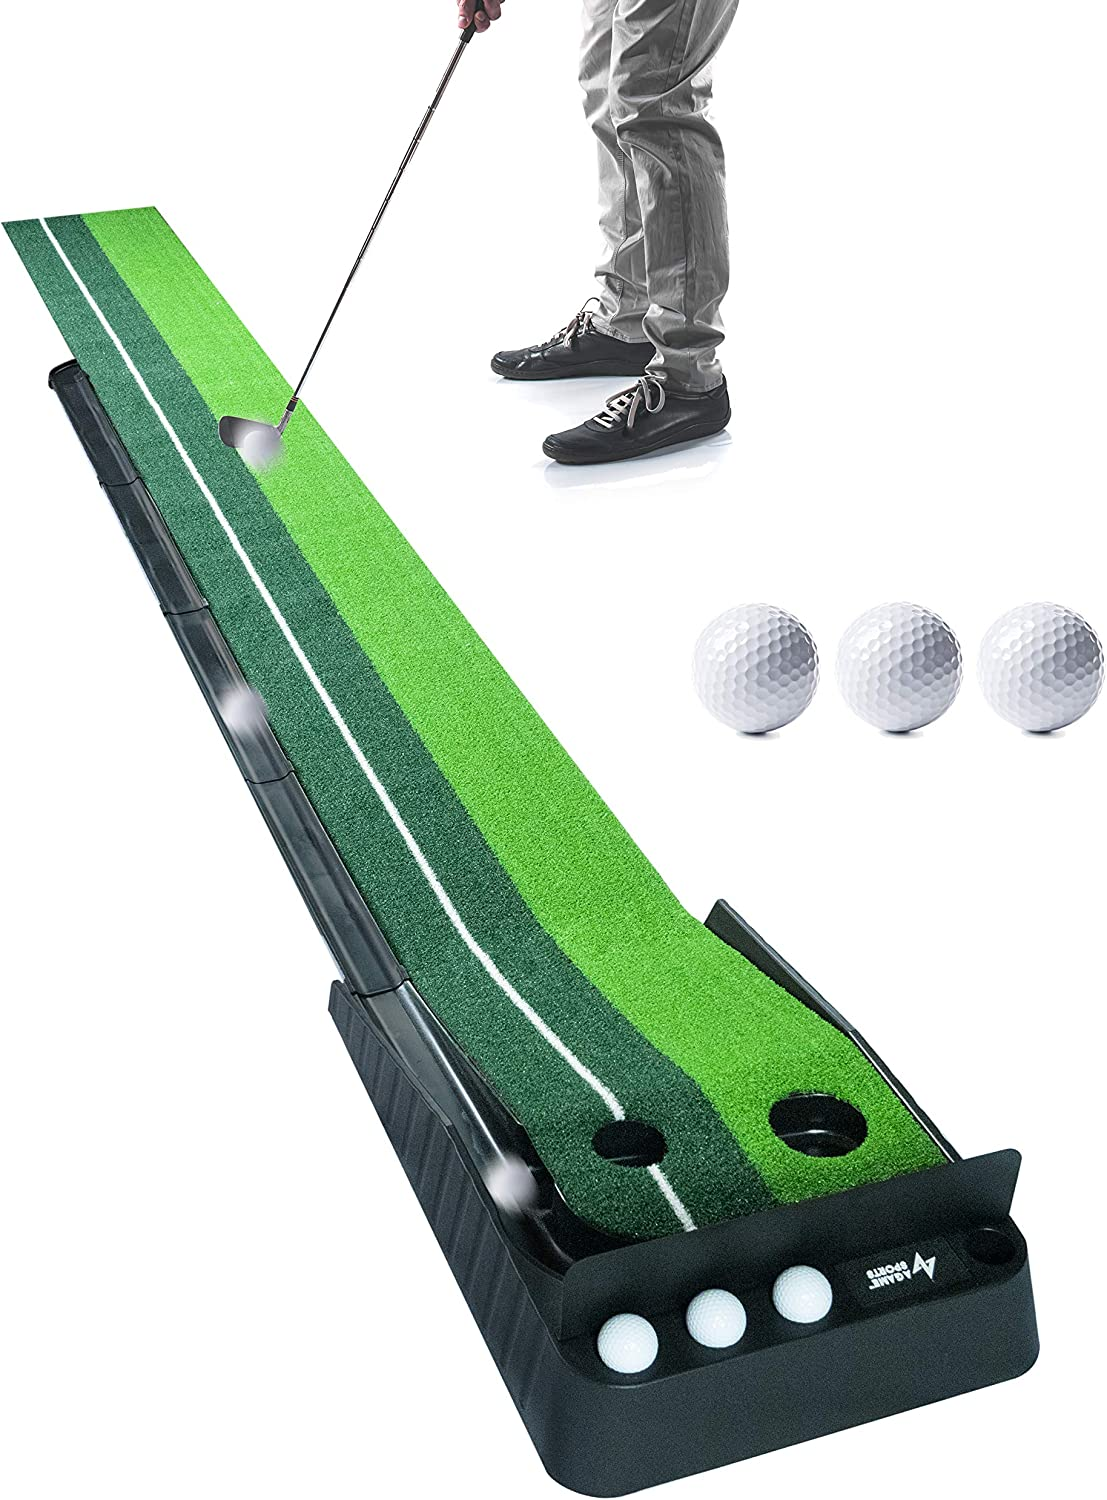 A Game Sports Indoor Golf Putting Green with Ball Return (10 Ft) | Golf Gifts for Men | Golf Practice Putting Mat for Home or Office, Includes 3 Golf Balls & Ball Block Bezel